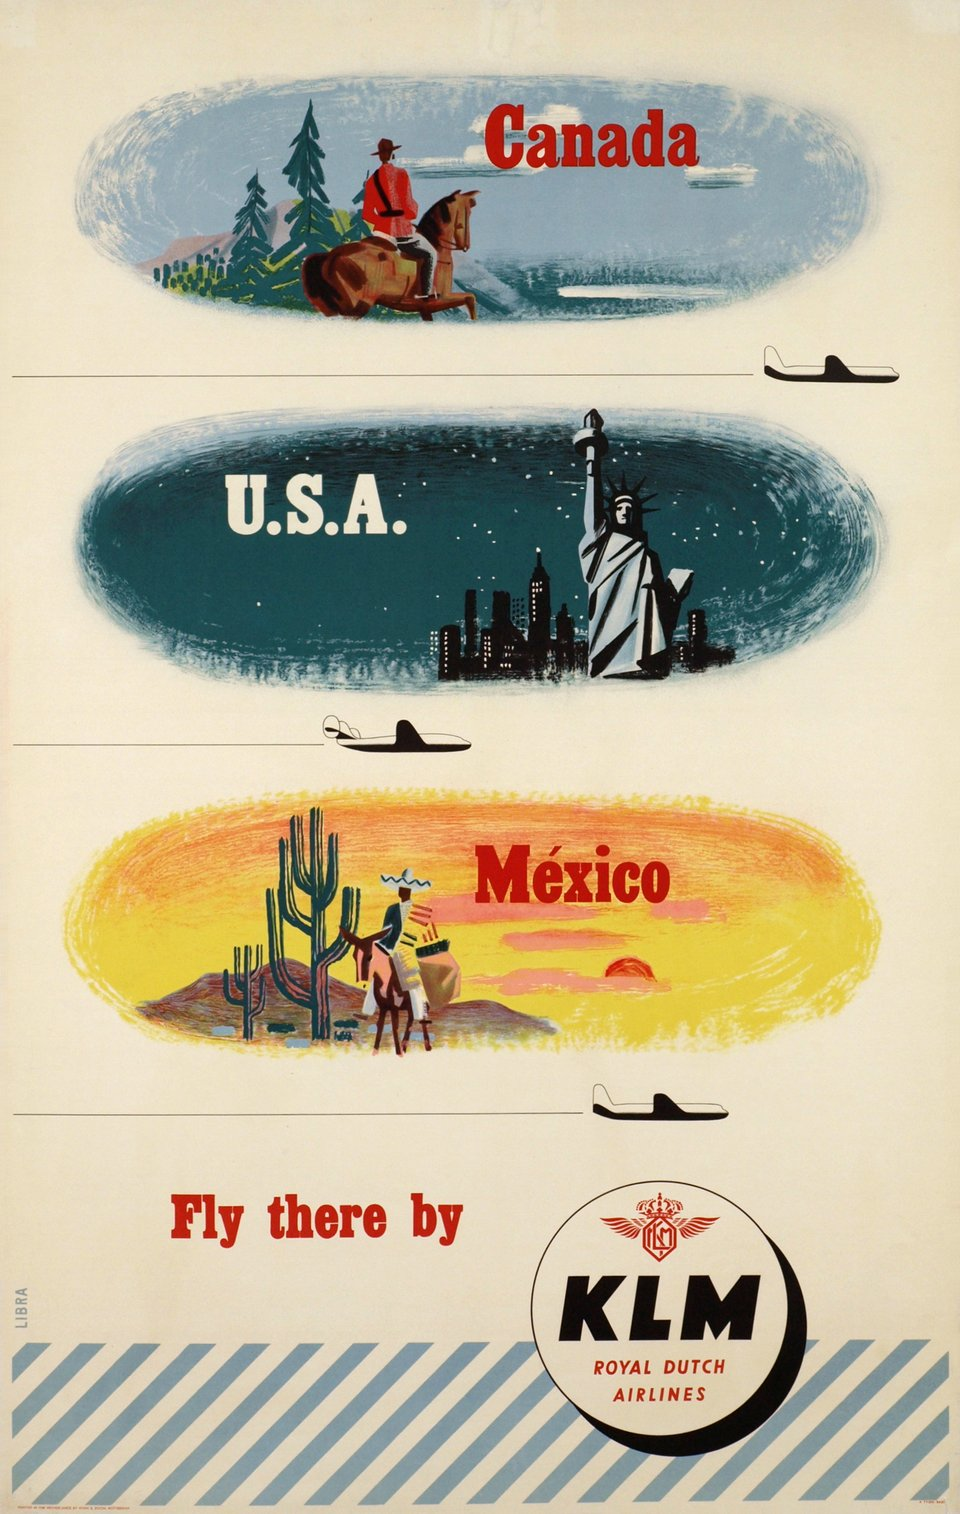 KLM, Canada, USA, Mexico, Fly there by KLM – Affiche ancienne – René LIBRA – 1952